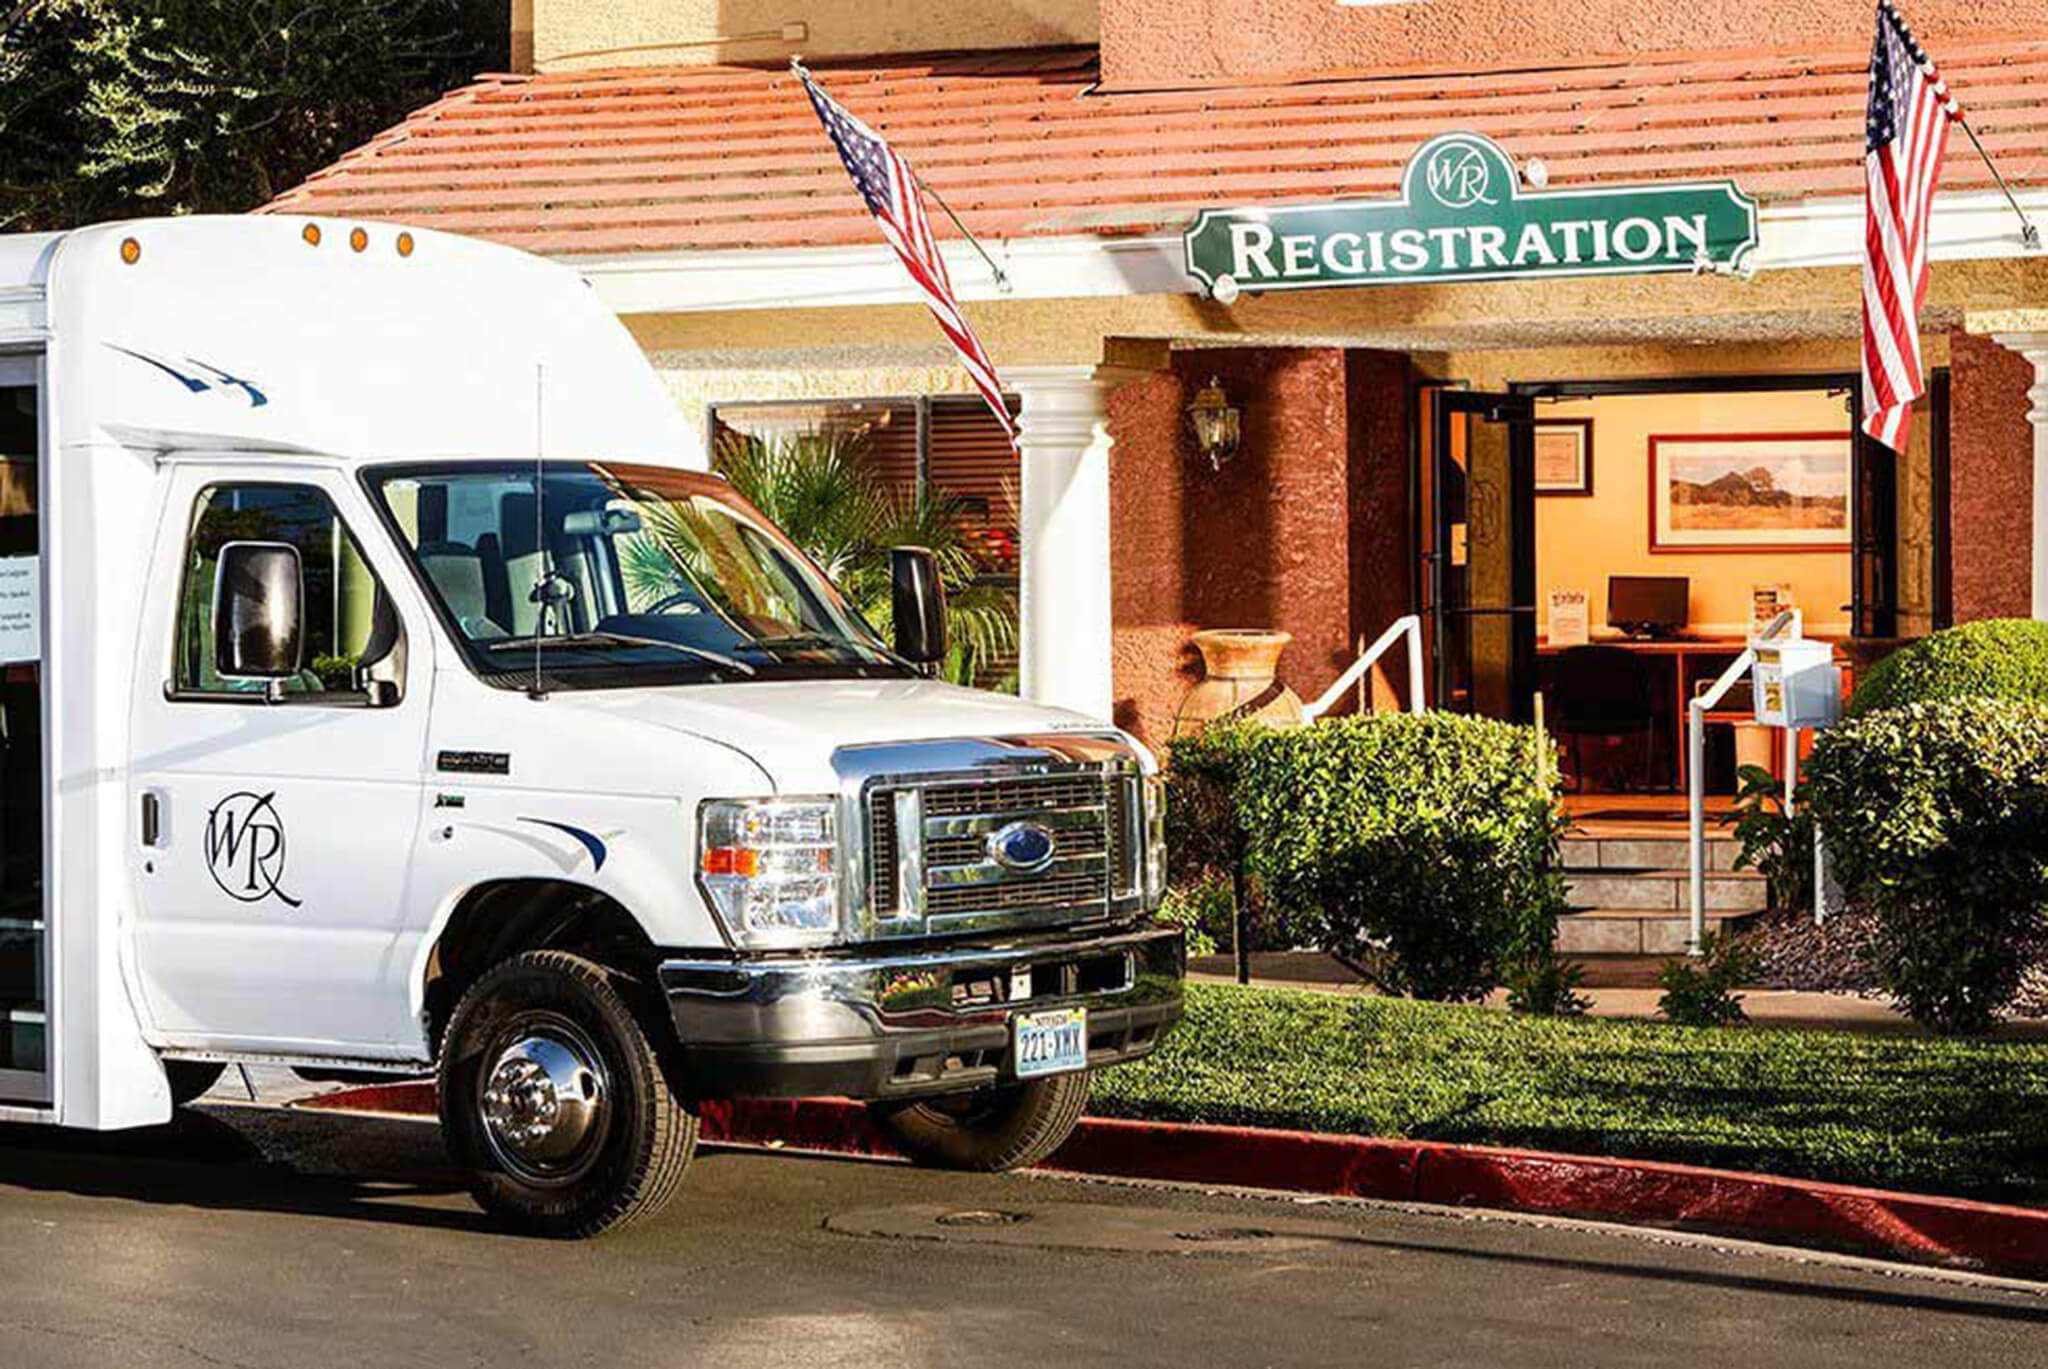 Does Westgate Vacation Villas have a shuttle and is there a fee?